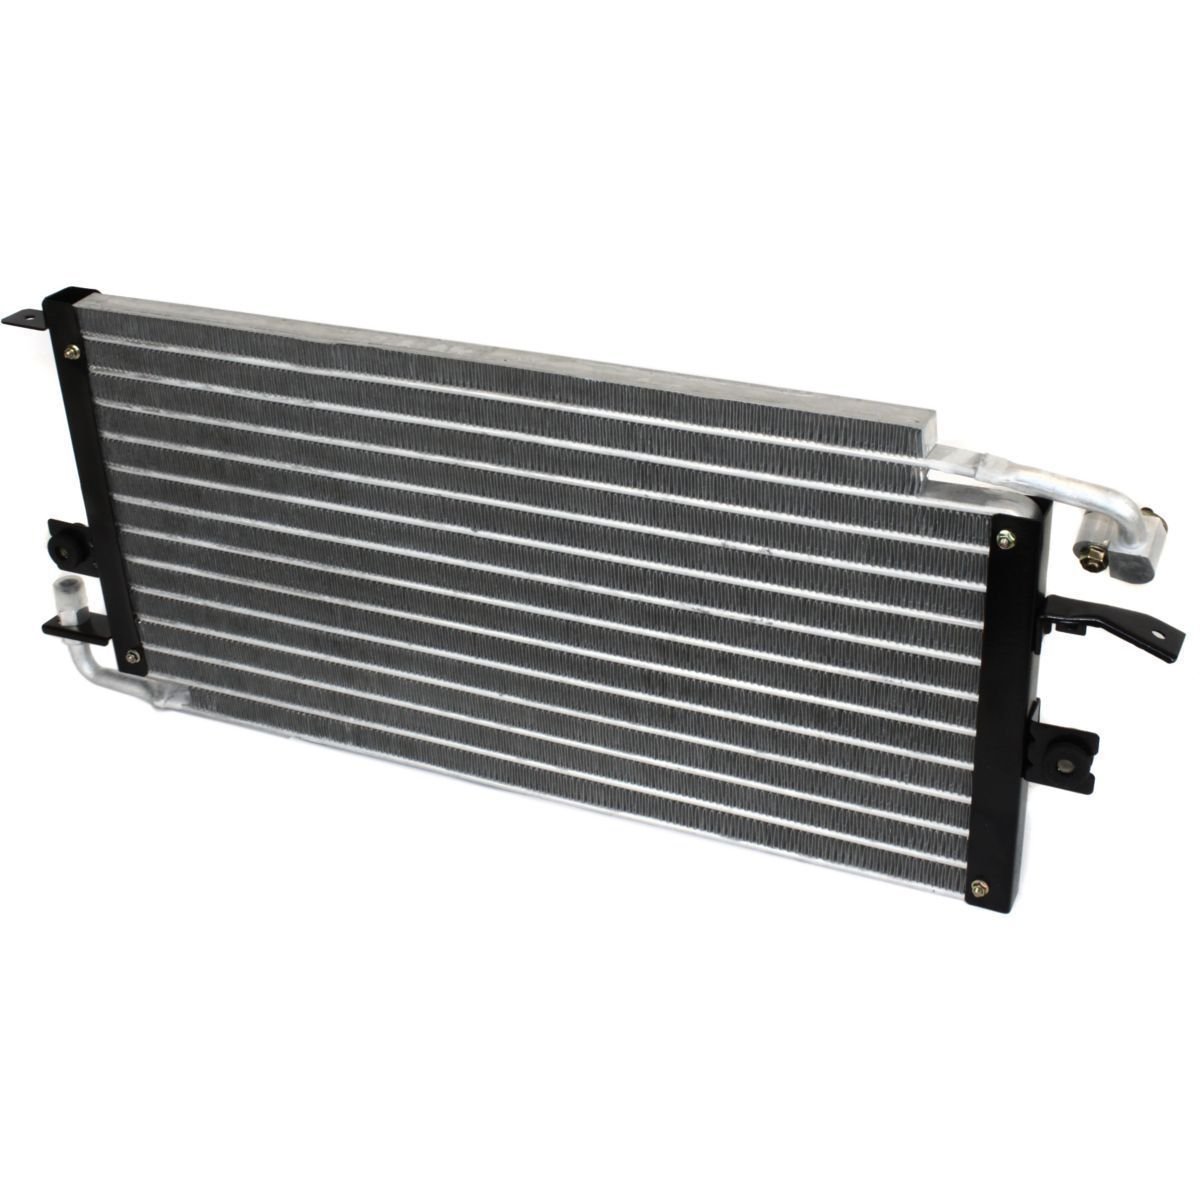 New A//C Condenser for Toyota Pickup TO3030134 1994 to 1995